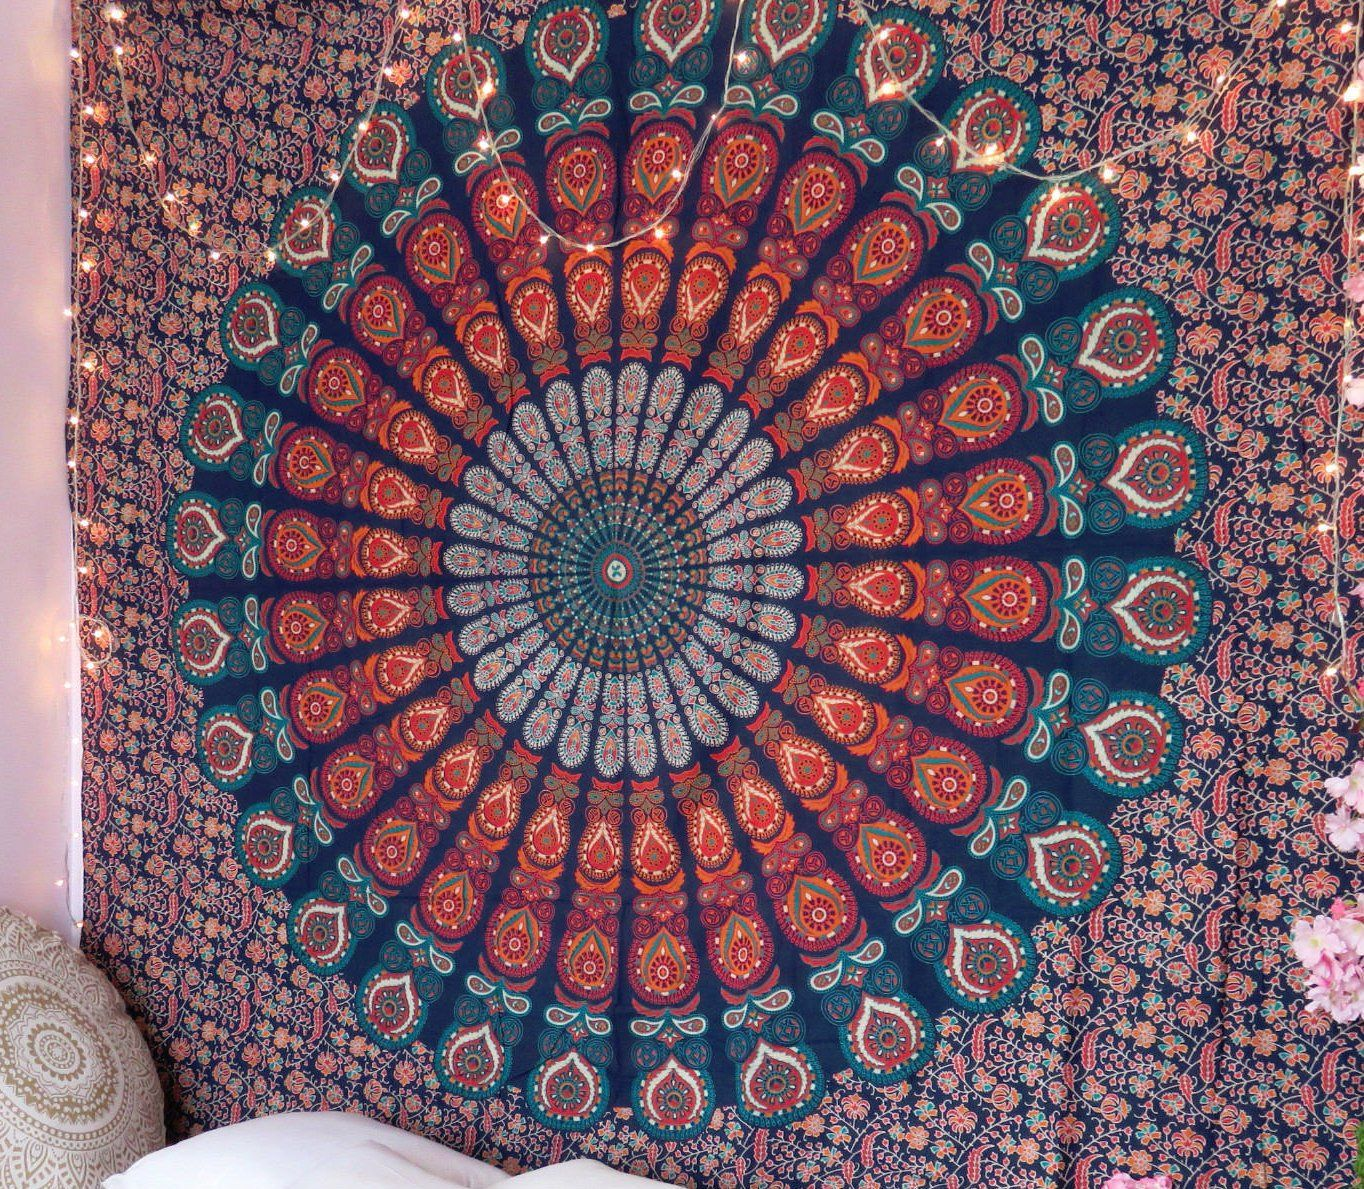 Trippy Mandala Tapestry Hippie Dorm Tapestries Cheap Mandala Wall Hanging Cool Tapestries Wall Art Mandala Tapestry Mandala Tapestries Wall Hangings Tapestry